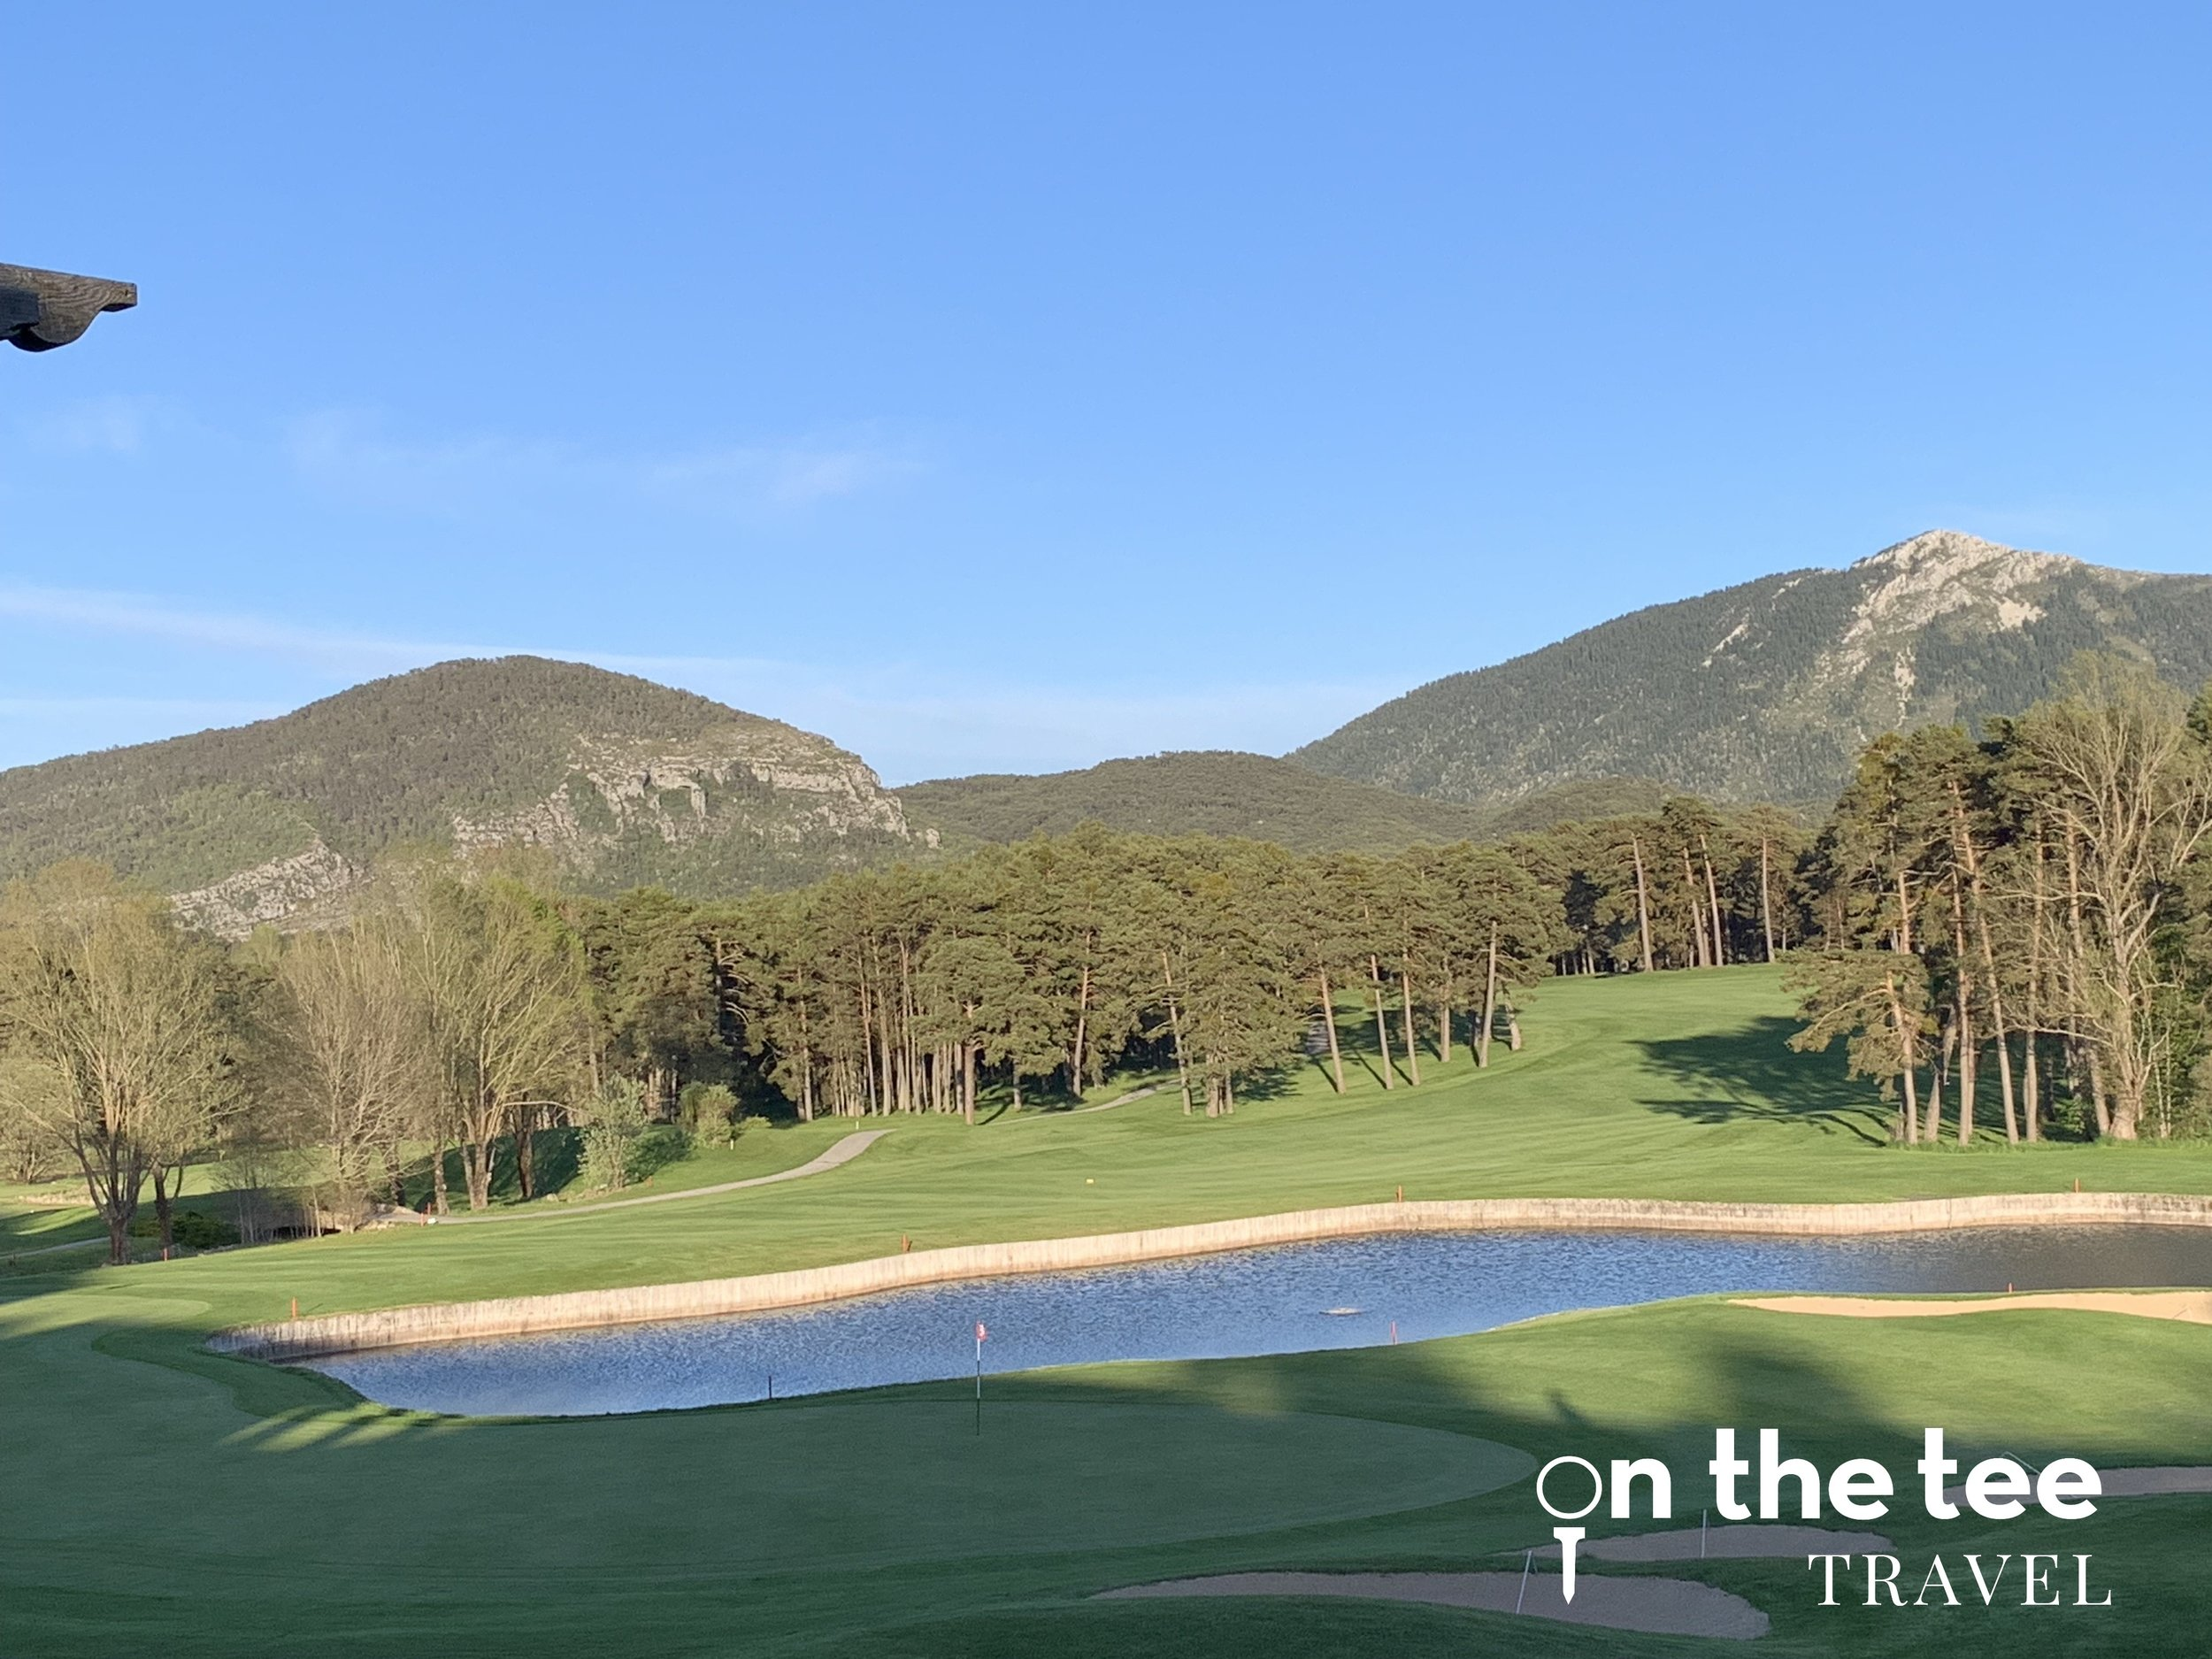 Taulane On The Tee on The French Riviera 5.jpg